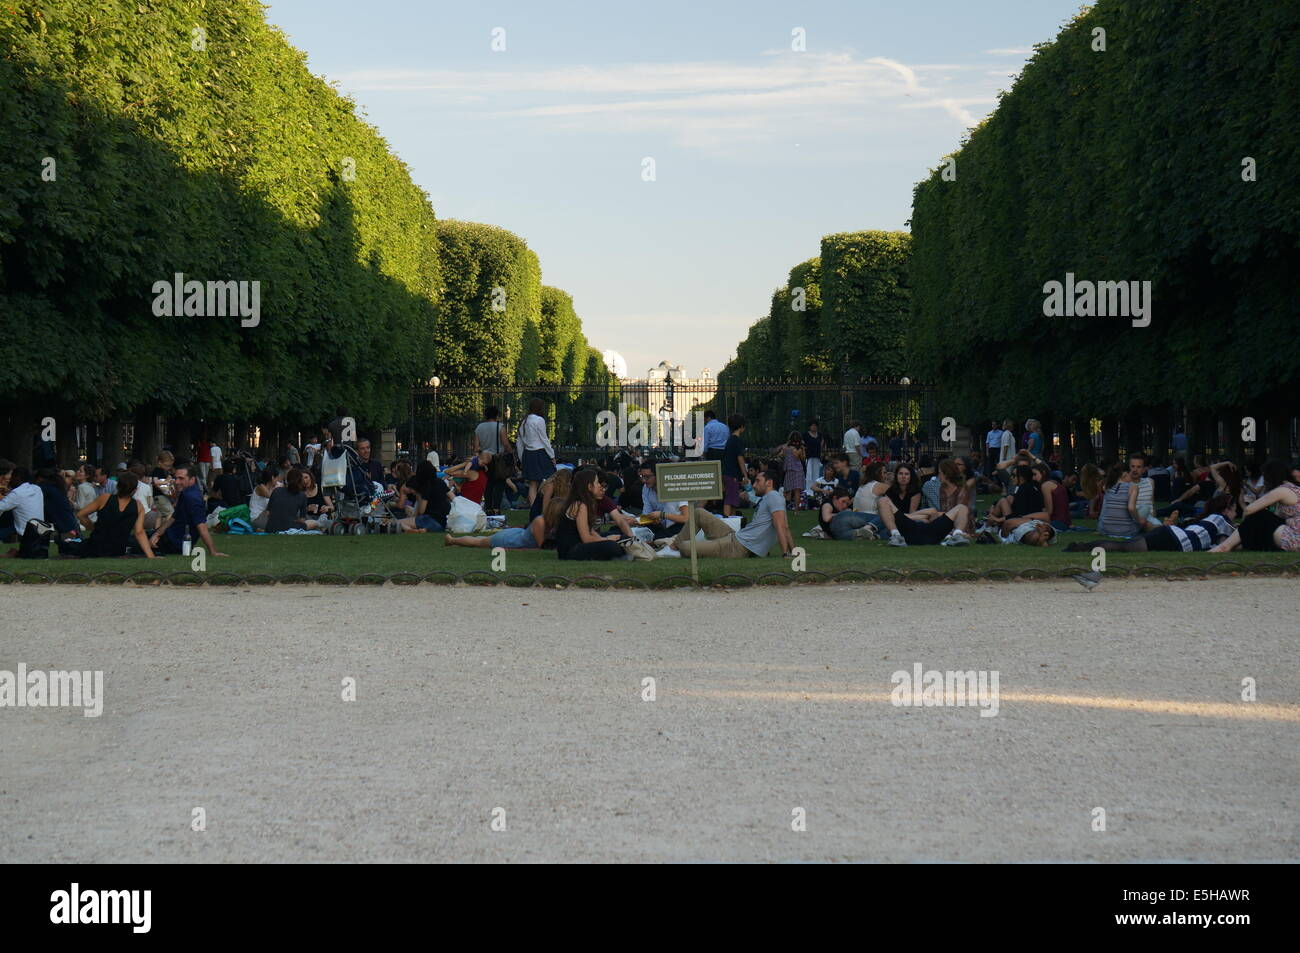 Tourists Parisians relaxing sitting on the grass in Jardin du Luxembourg Garden - Stock Image